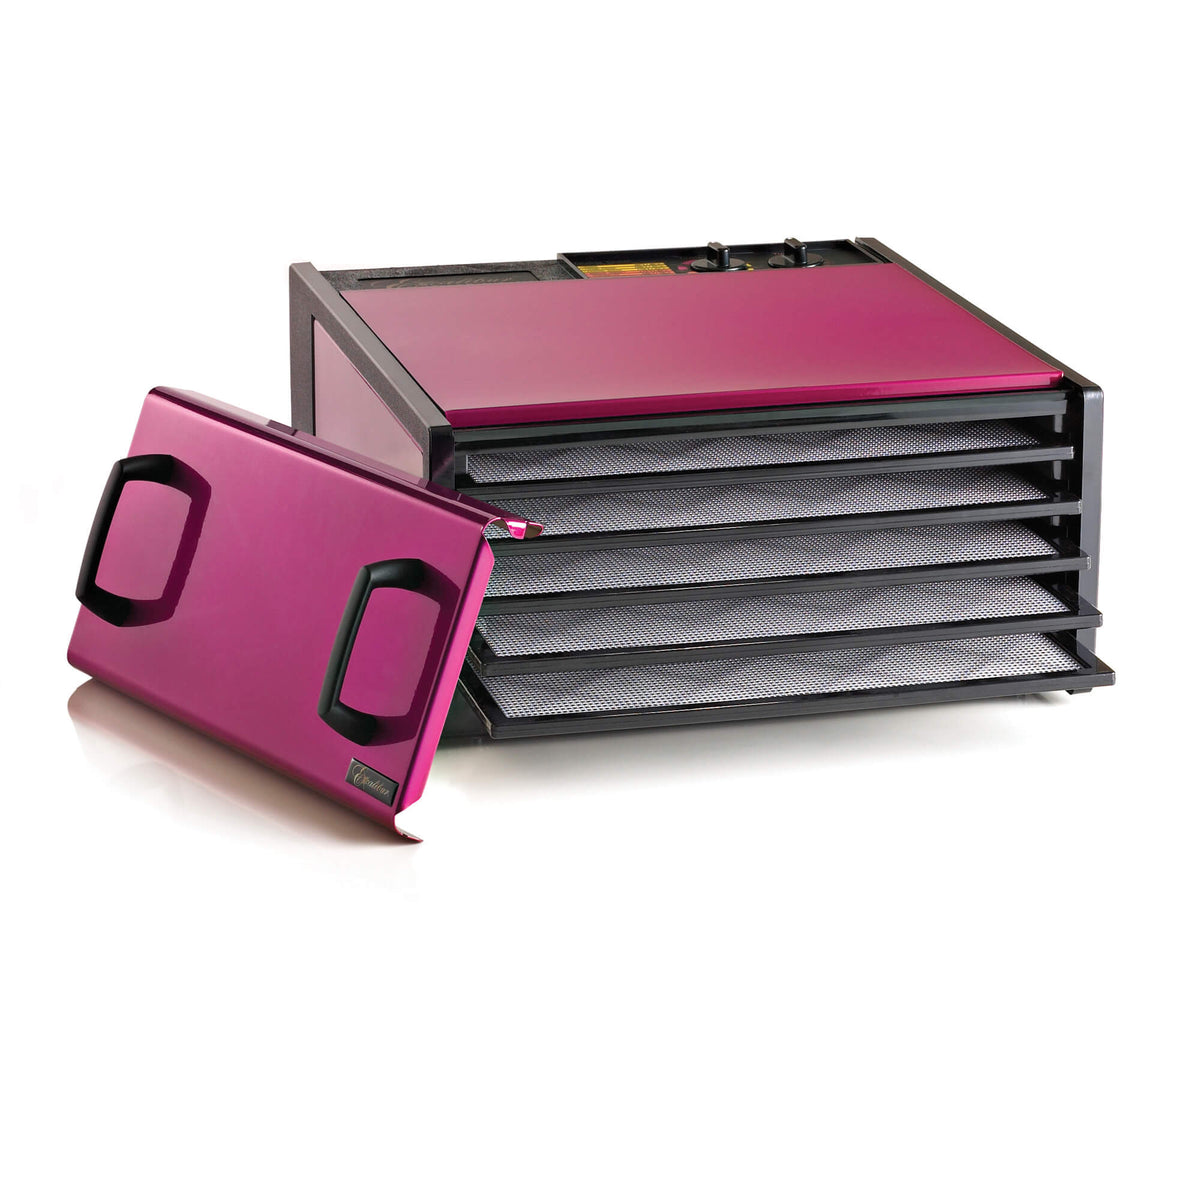 Excalibur D502RR Radiant Raspberry 5 tray stainless steel dehydrator with door propped to the side and trays pulled out.